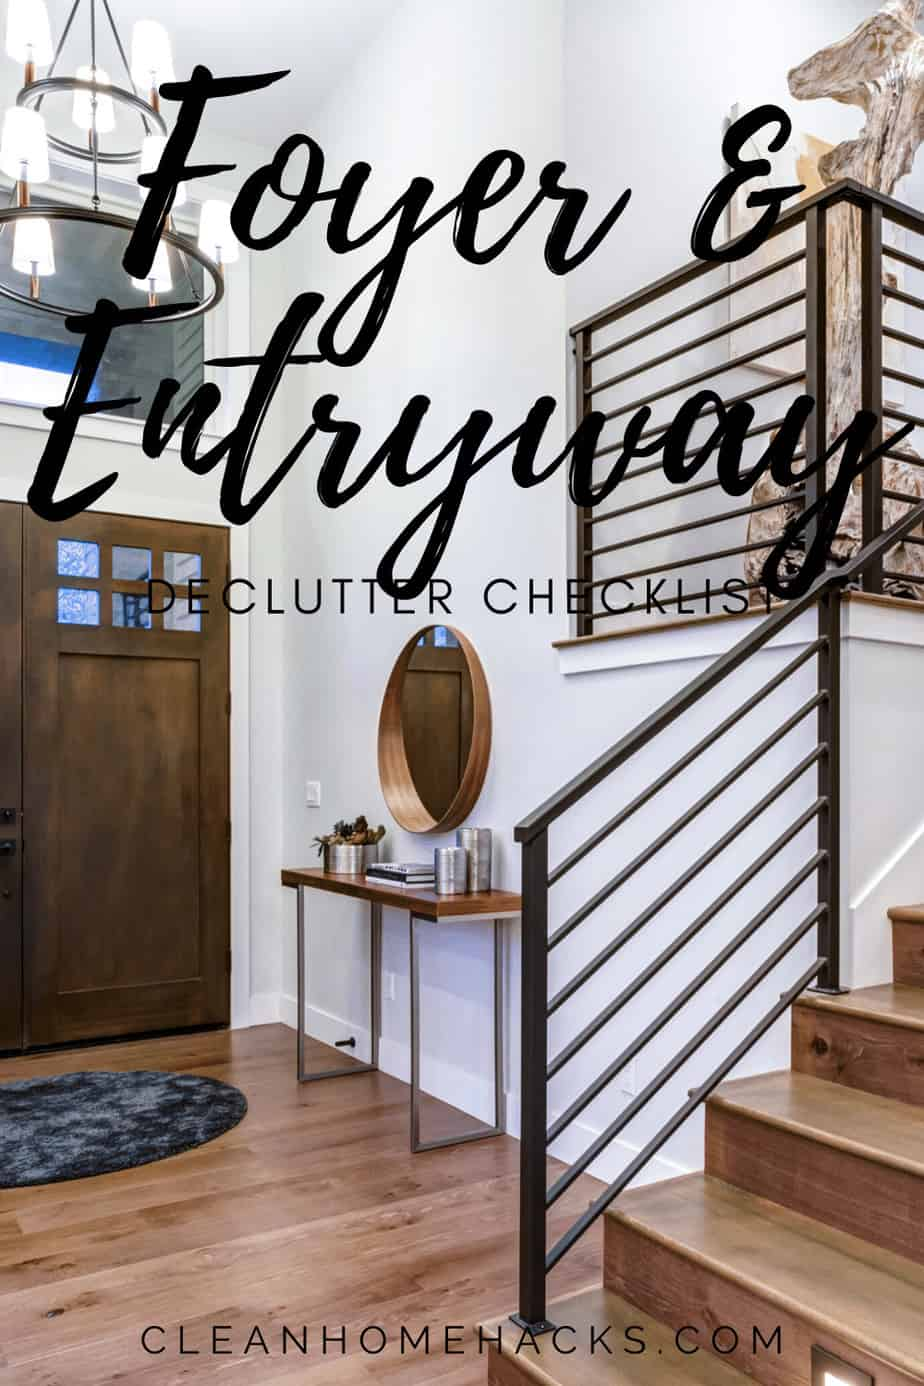 pinterest image foyer and entryway declutter checklist